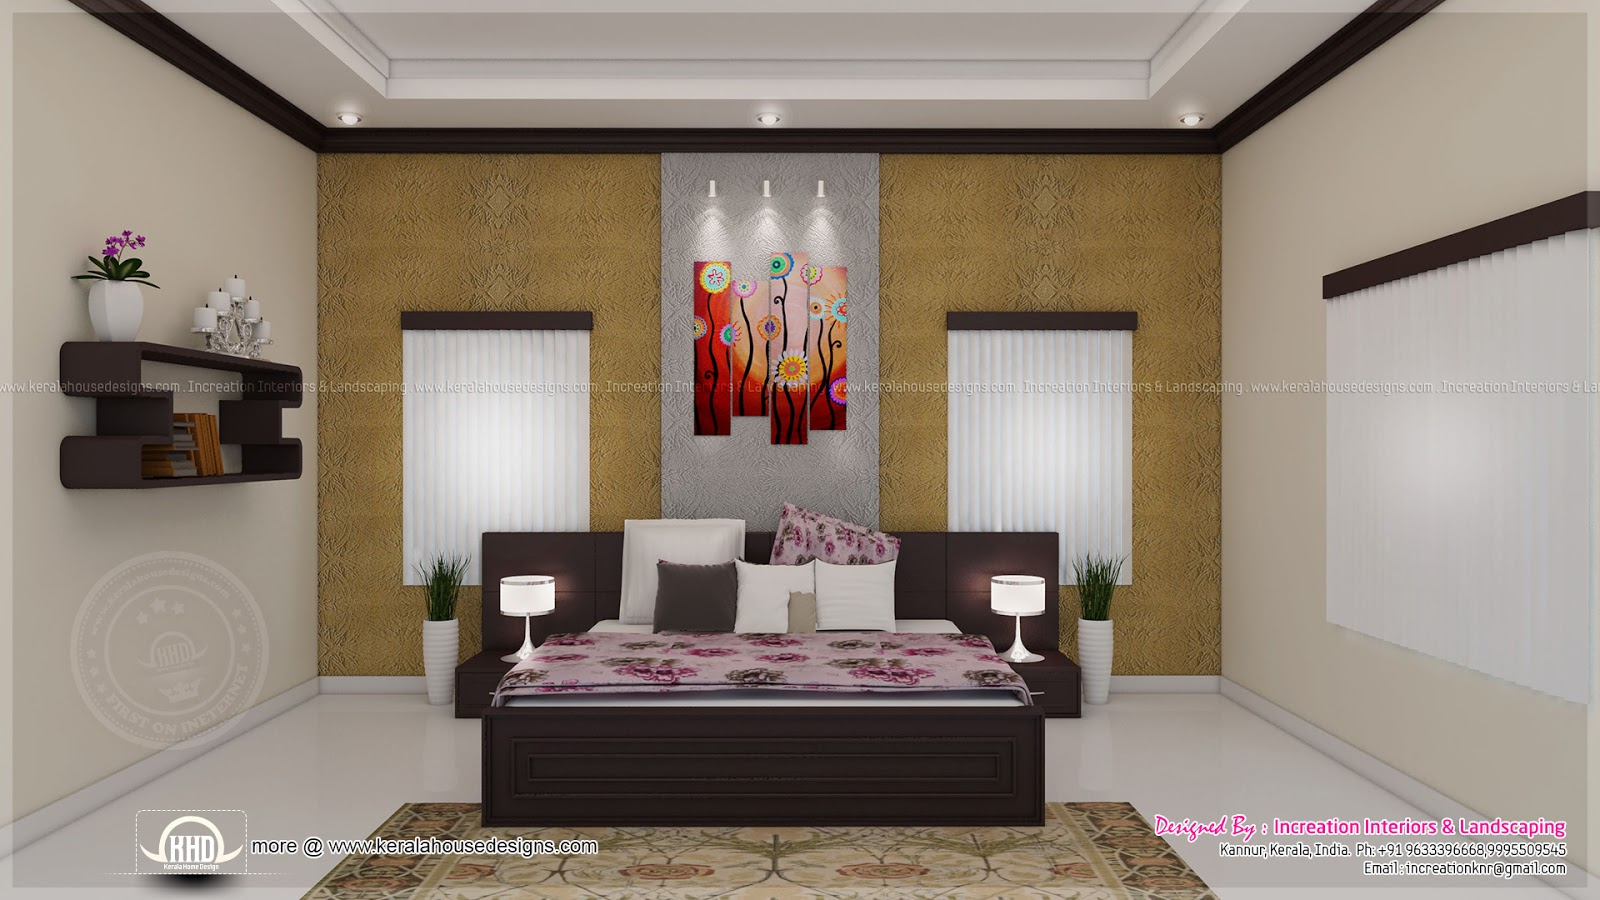 House interior ideas in 3d rendering kerala home design for Home gallery design